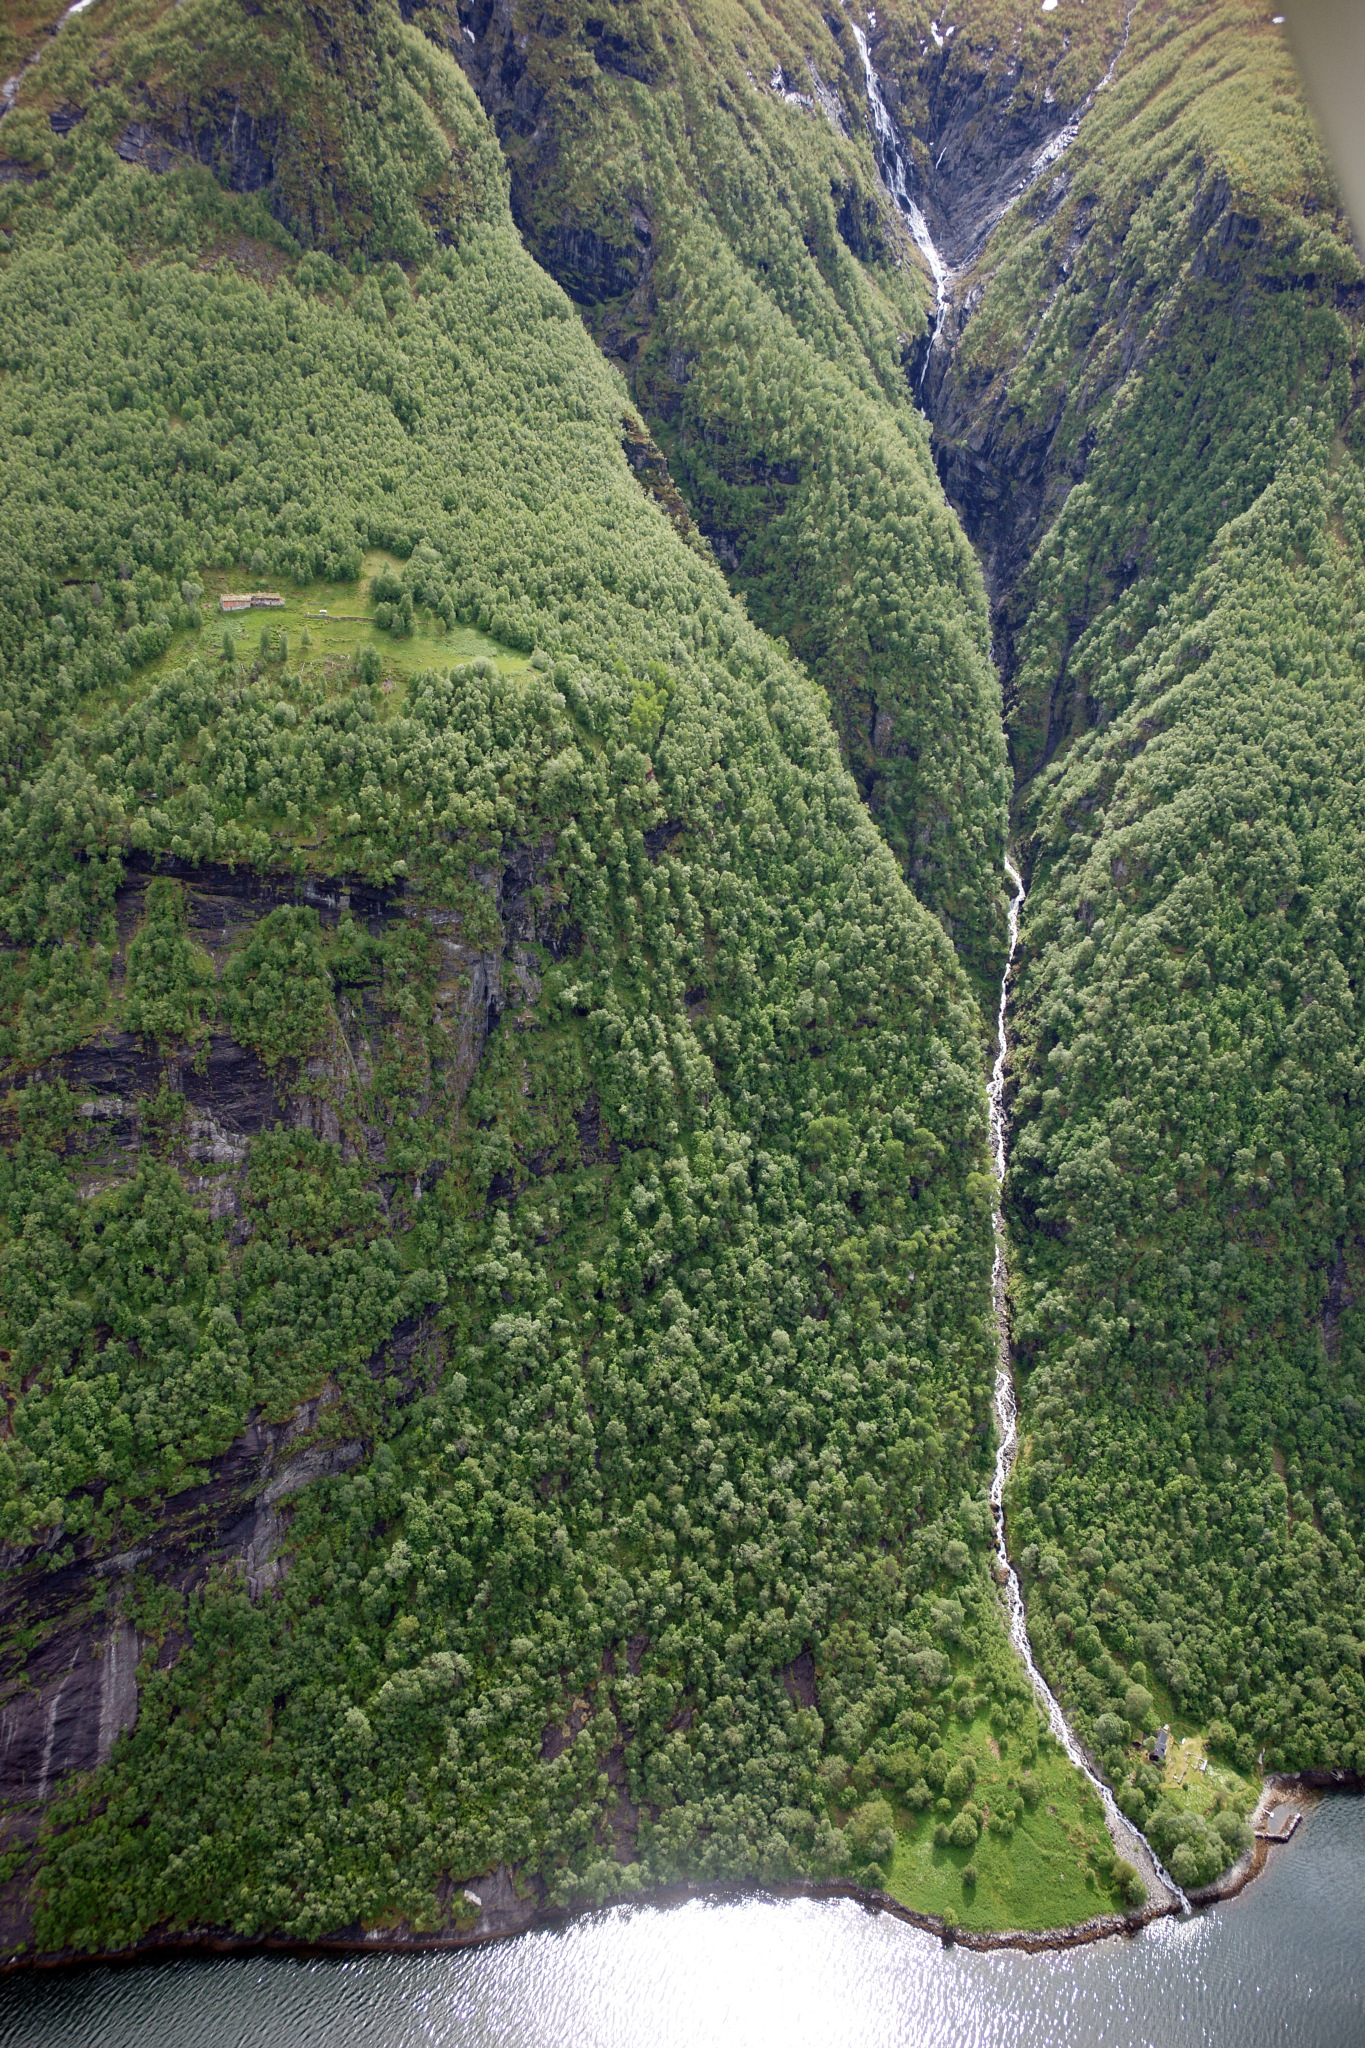 Geiranger, Norge by Lasse Tur